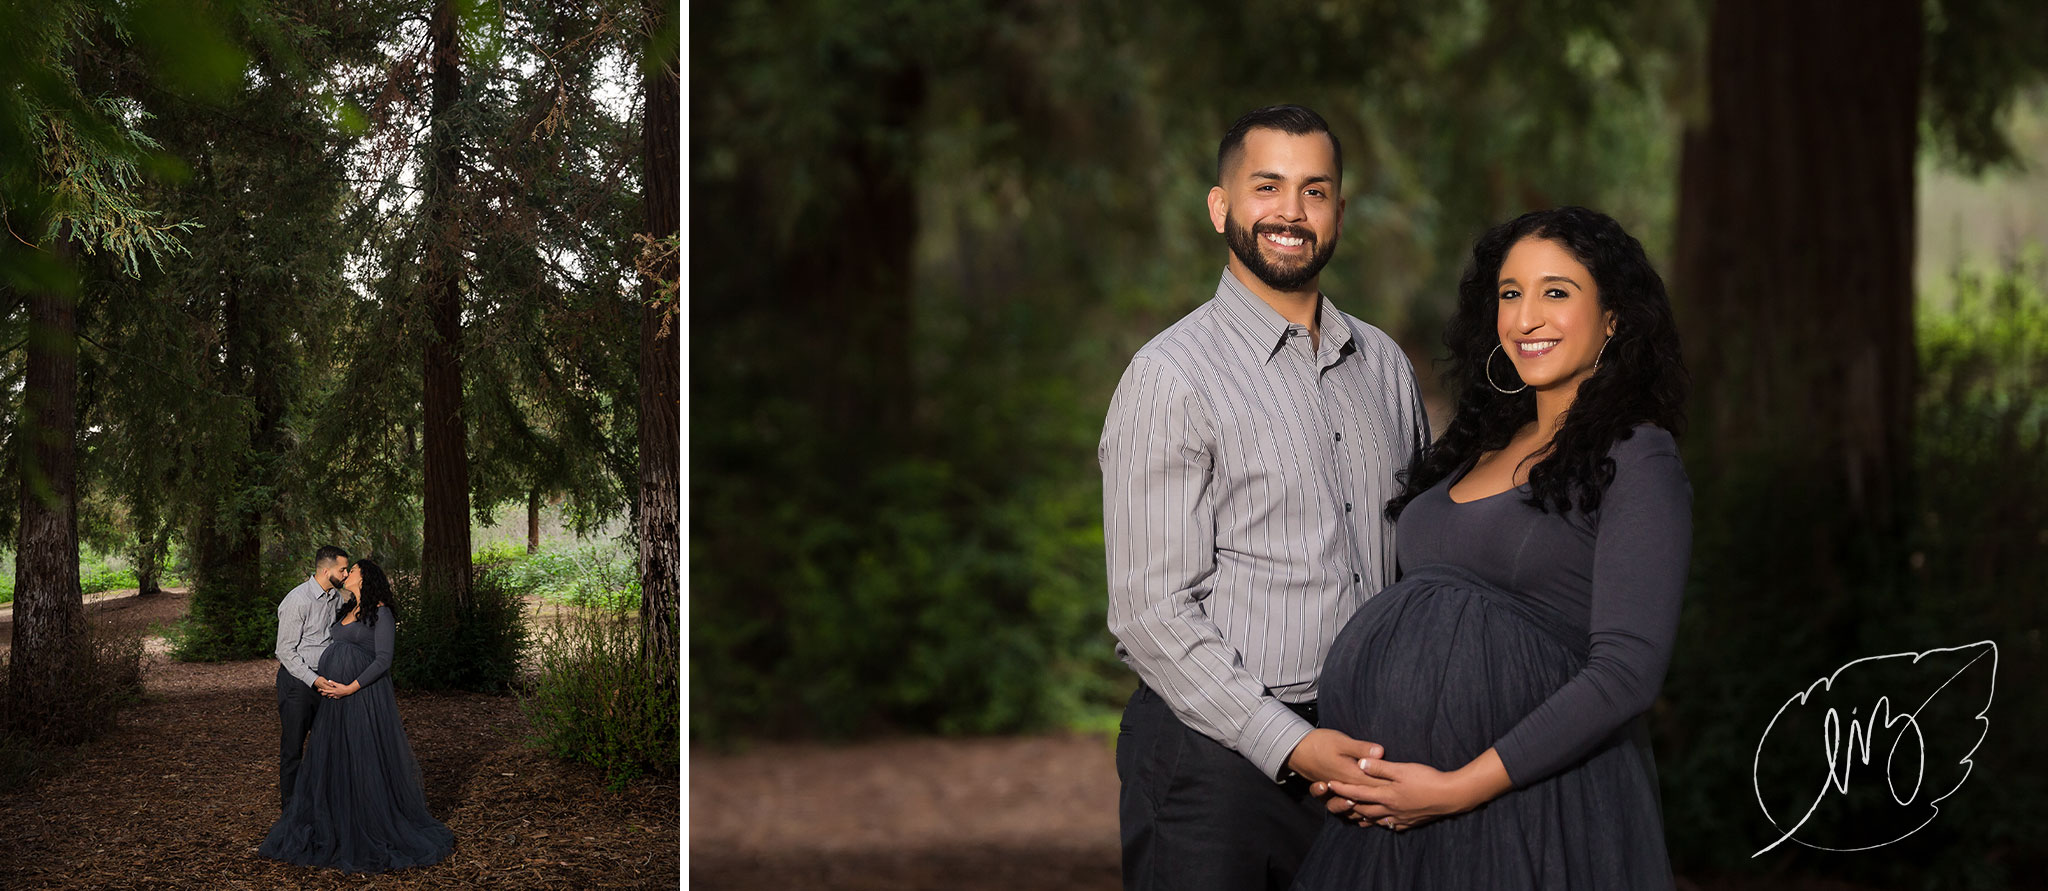 California_Inland_Empire_Maternity_Photographer_07.jpg